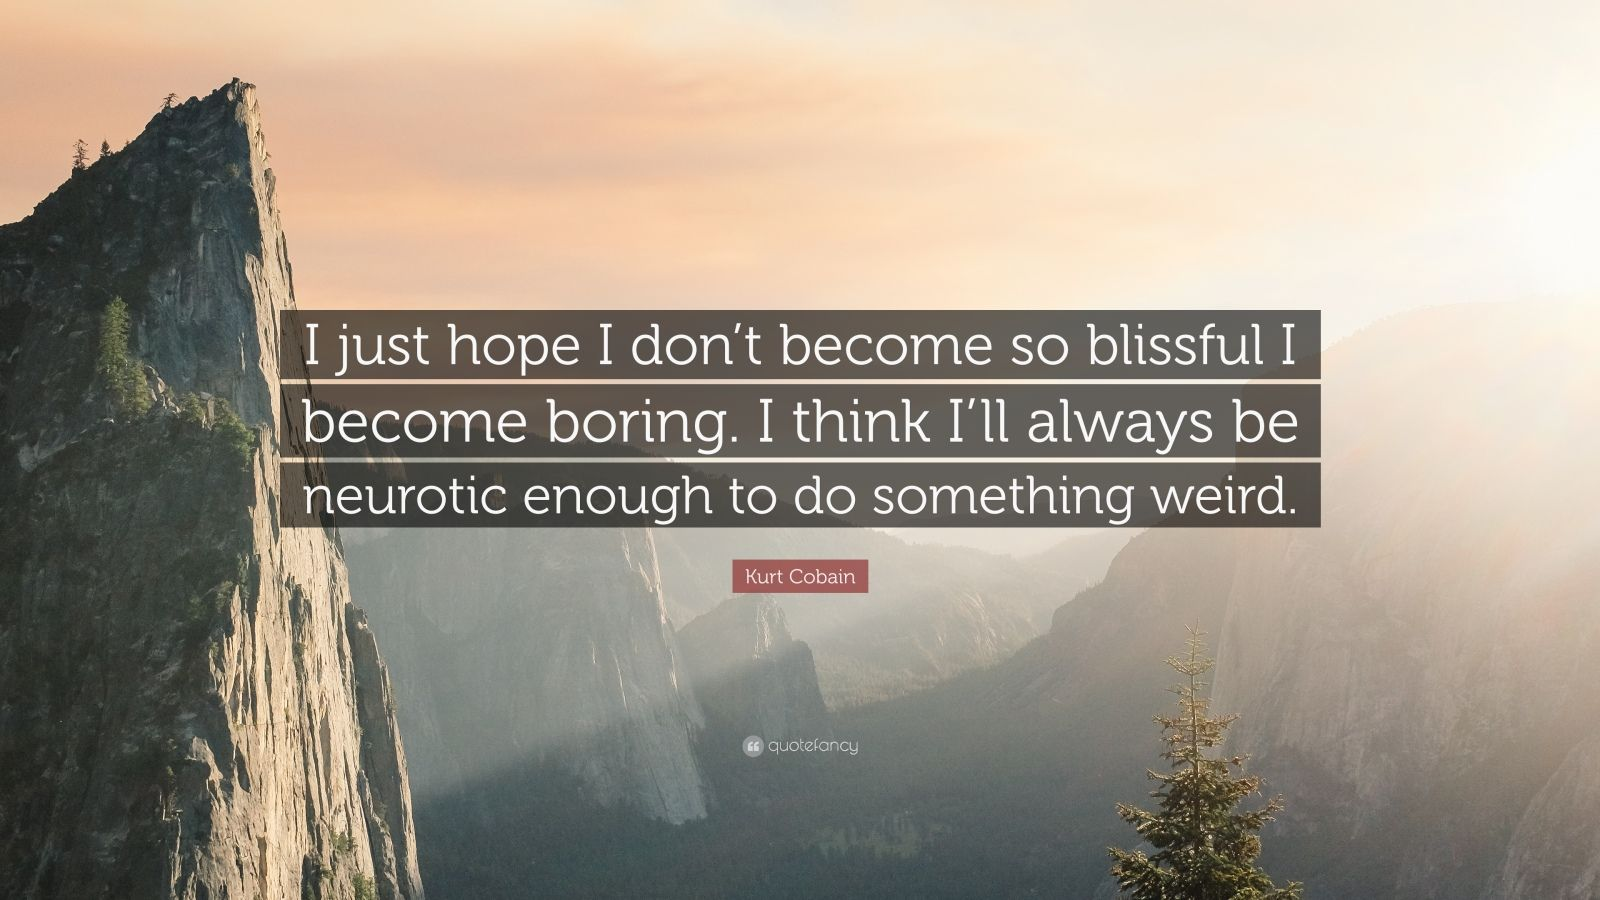 """Kurt Cobain Quote: """"I just hope I don't become so blissful I become boring. I think I'll always be neurotic enough to do something weird."""""""